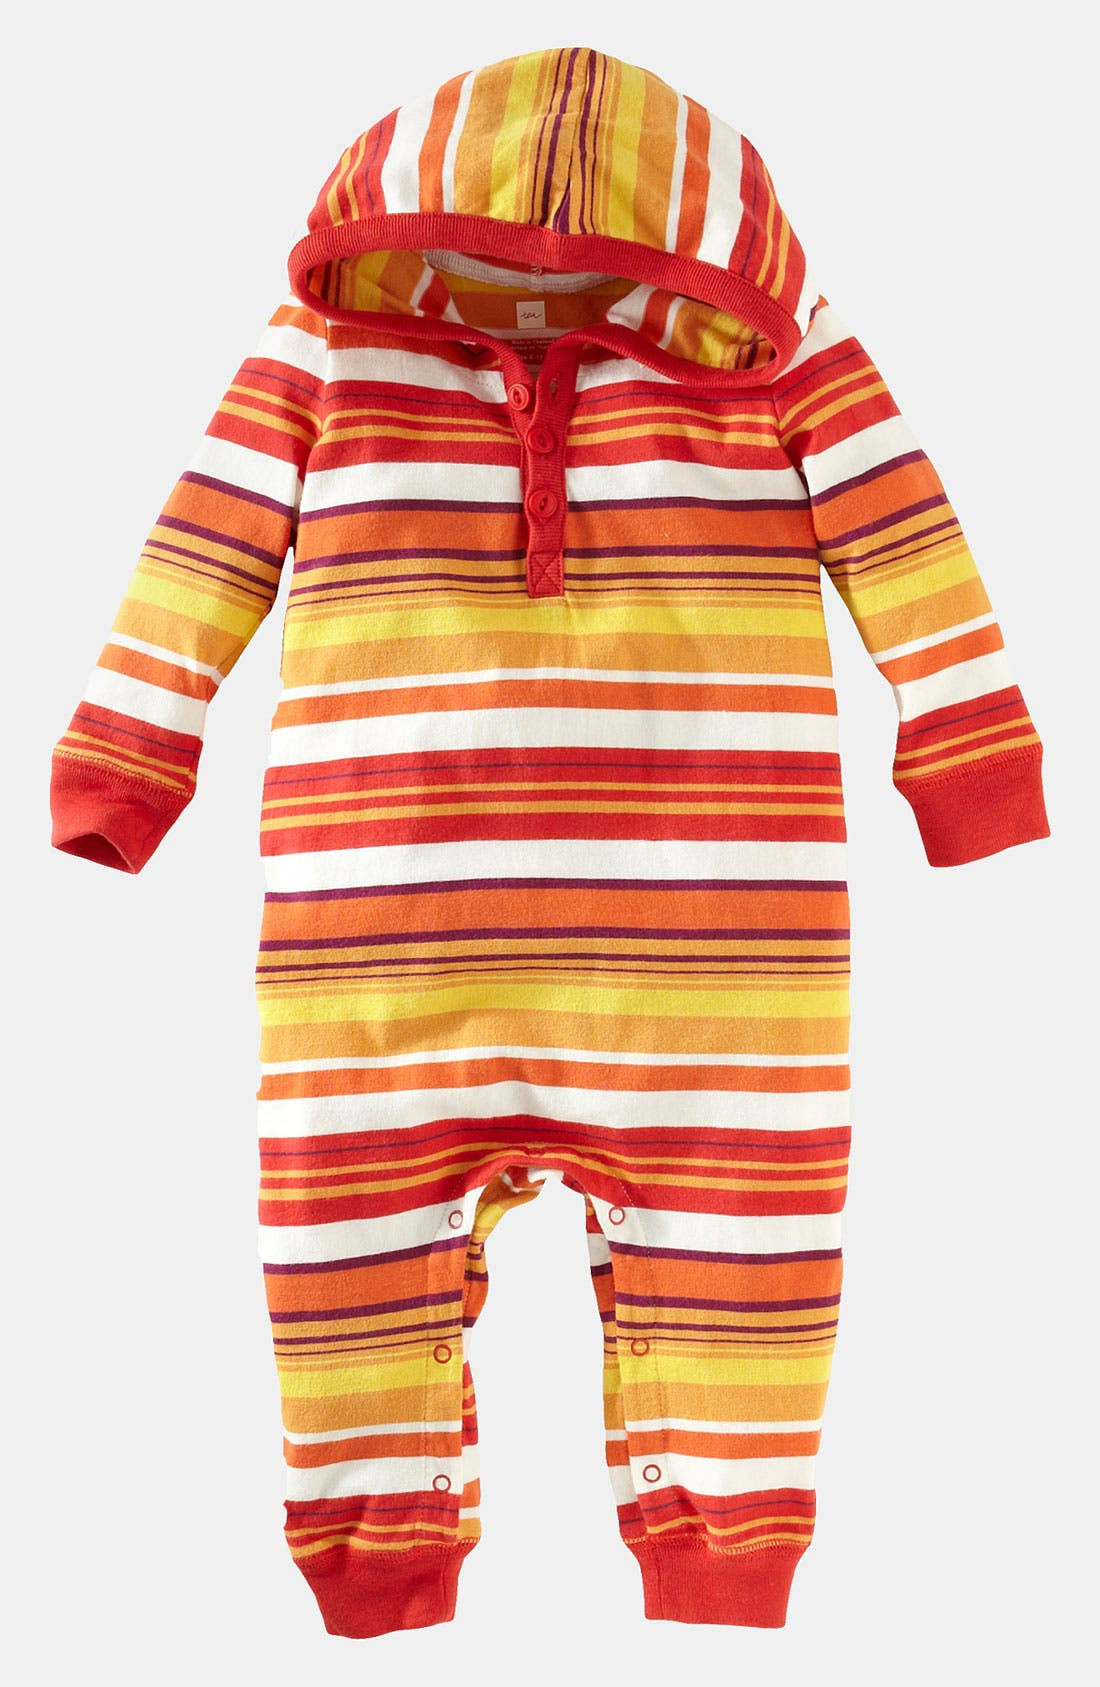 Main Image - Tea Collection 'Stripe Happy' Hooded Romper (Infant)